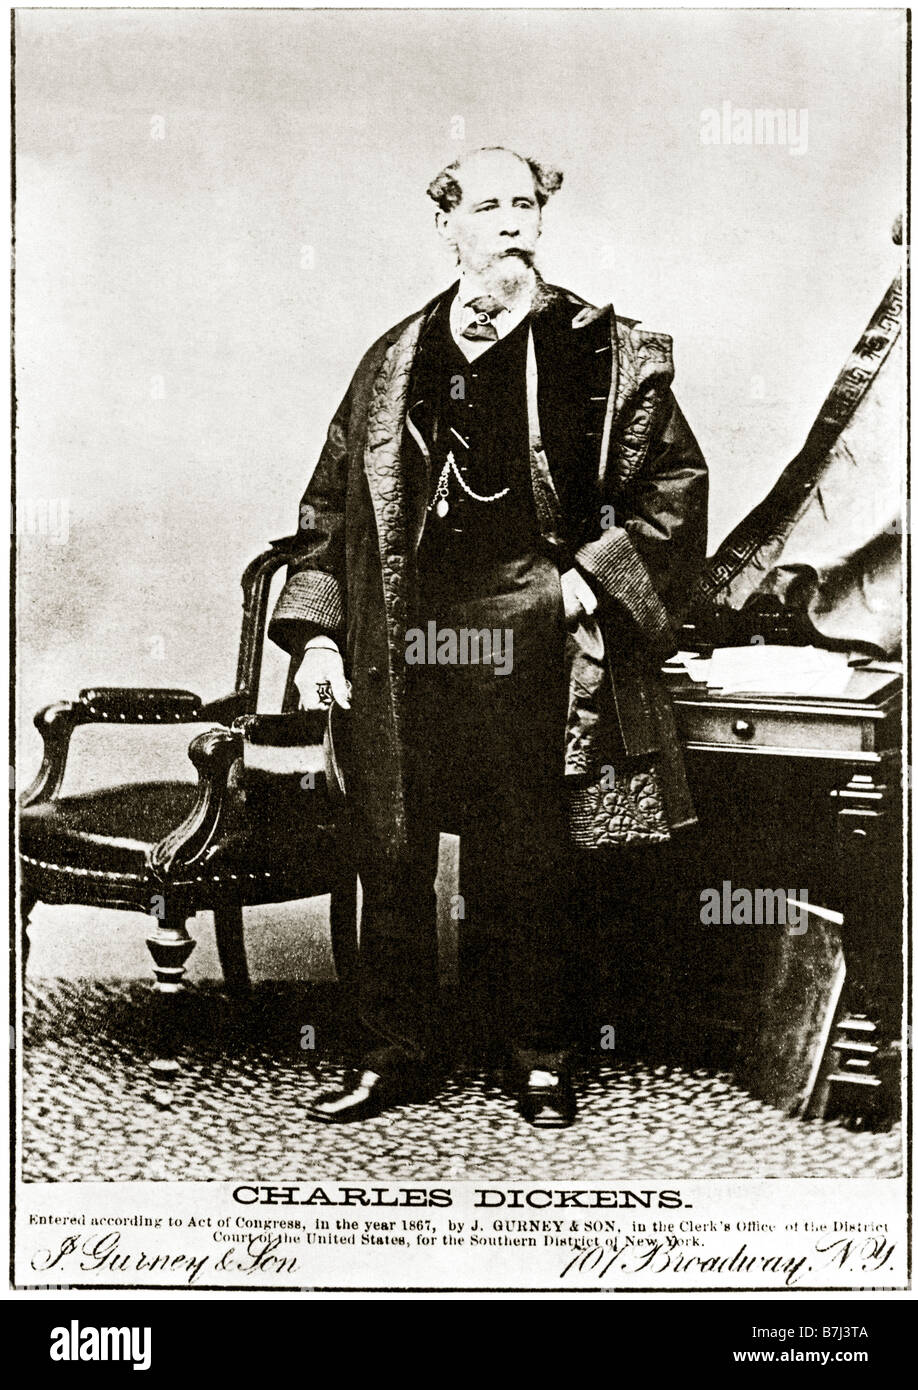 Charles Dickens in New York 1867 photographic portrait of the author by Gurney on his reading tour of the USA - Stock Image